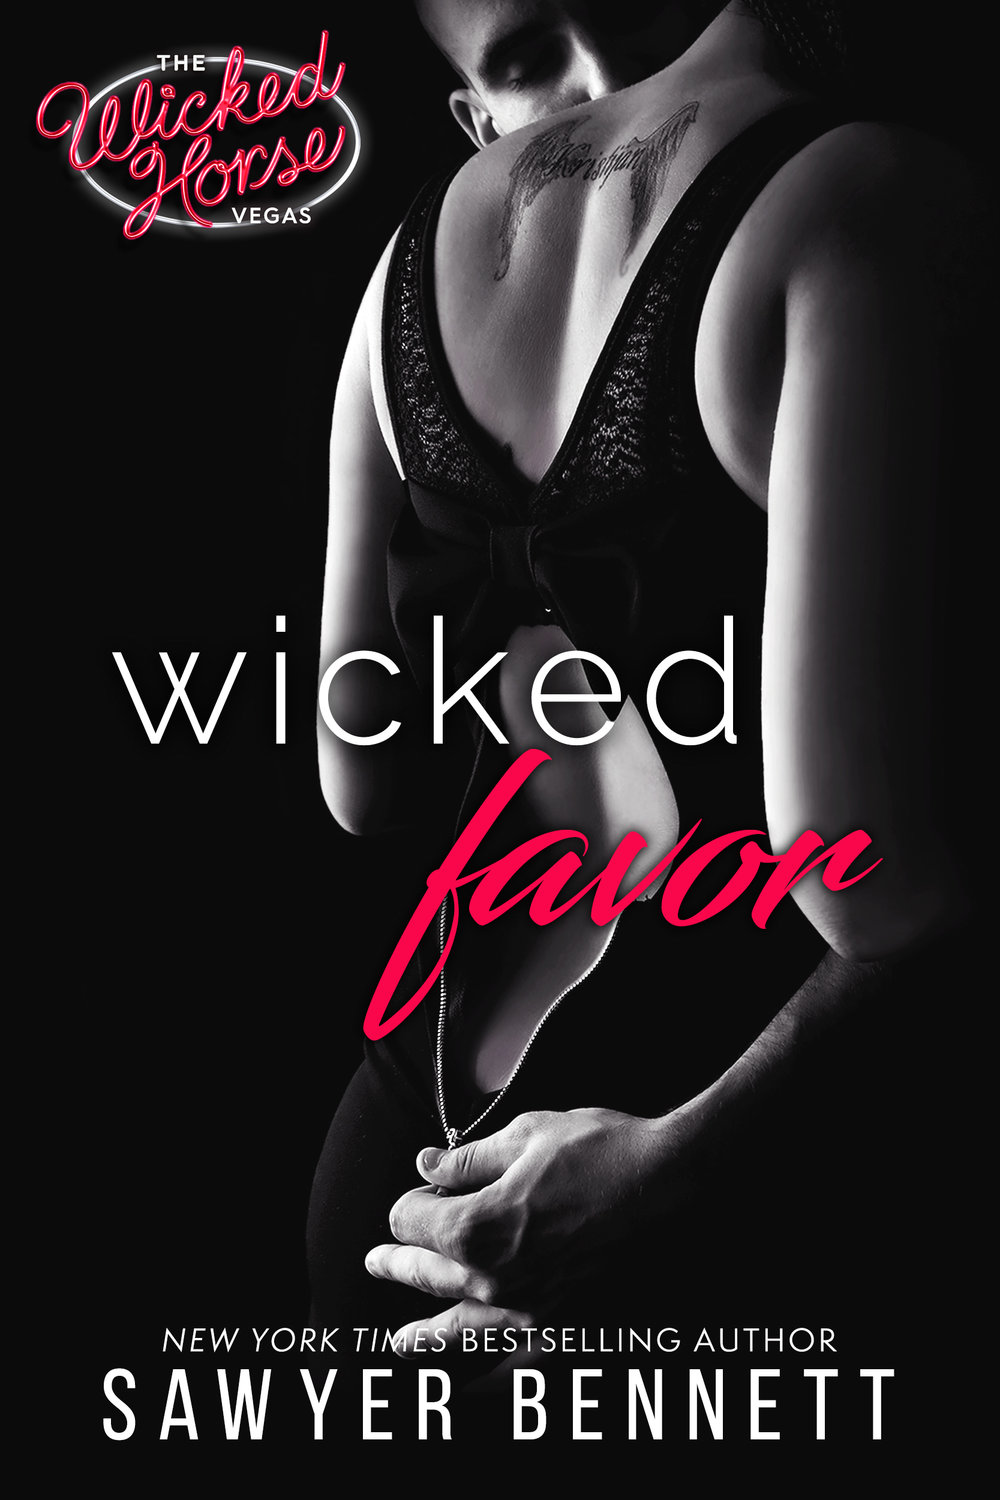 New York Times bestselling author, Sawyer Bennett, is happy to introduce a new Wicked Horse club in Las Vegas and you're cordially invited to attend the grand opening... As the owner of The Wicked Horse, an elite sex club located along the Vegas Strip, Jerico Jameson never spends the night alone. Gorgeous, ripped, and totally alpha, Jerico doesn't grant favors and will rarely give you the time of day—unless he wants you in his bed. So when the sister of his sworn enemy shows up asking for help, saying no should be easy. But when Jerico takes one look at her and sees an opportunity to help this beautiful woman while exacting revenge on her brother, he's not about to pass that up. Beaten and bruised, Trista Barnes is running out of options, and Jerico is her last chance to get out of the mess she's in. She doesn't know why Jerico despises her brother so much, but as long as he can help her, she doesn't care. Jerico offers her safety while opening her up to a sinful world she never knew existed. As she succumbs to Jerico's erotic charm, Trista lets herself fall into the wicked world of guilt free pleasure with no regrets. Under his strong alpha hand, she blooms, and so does Jerico's possessiveness. But what happens when Trista finds out she was a pawn in Jerico's game all along, and that the price for his favor was steeper than she ever imagined – her heart.